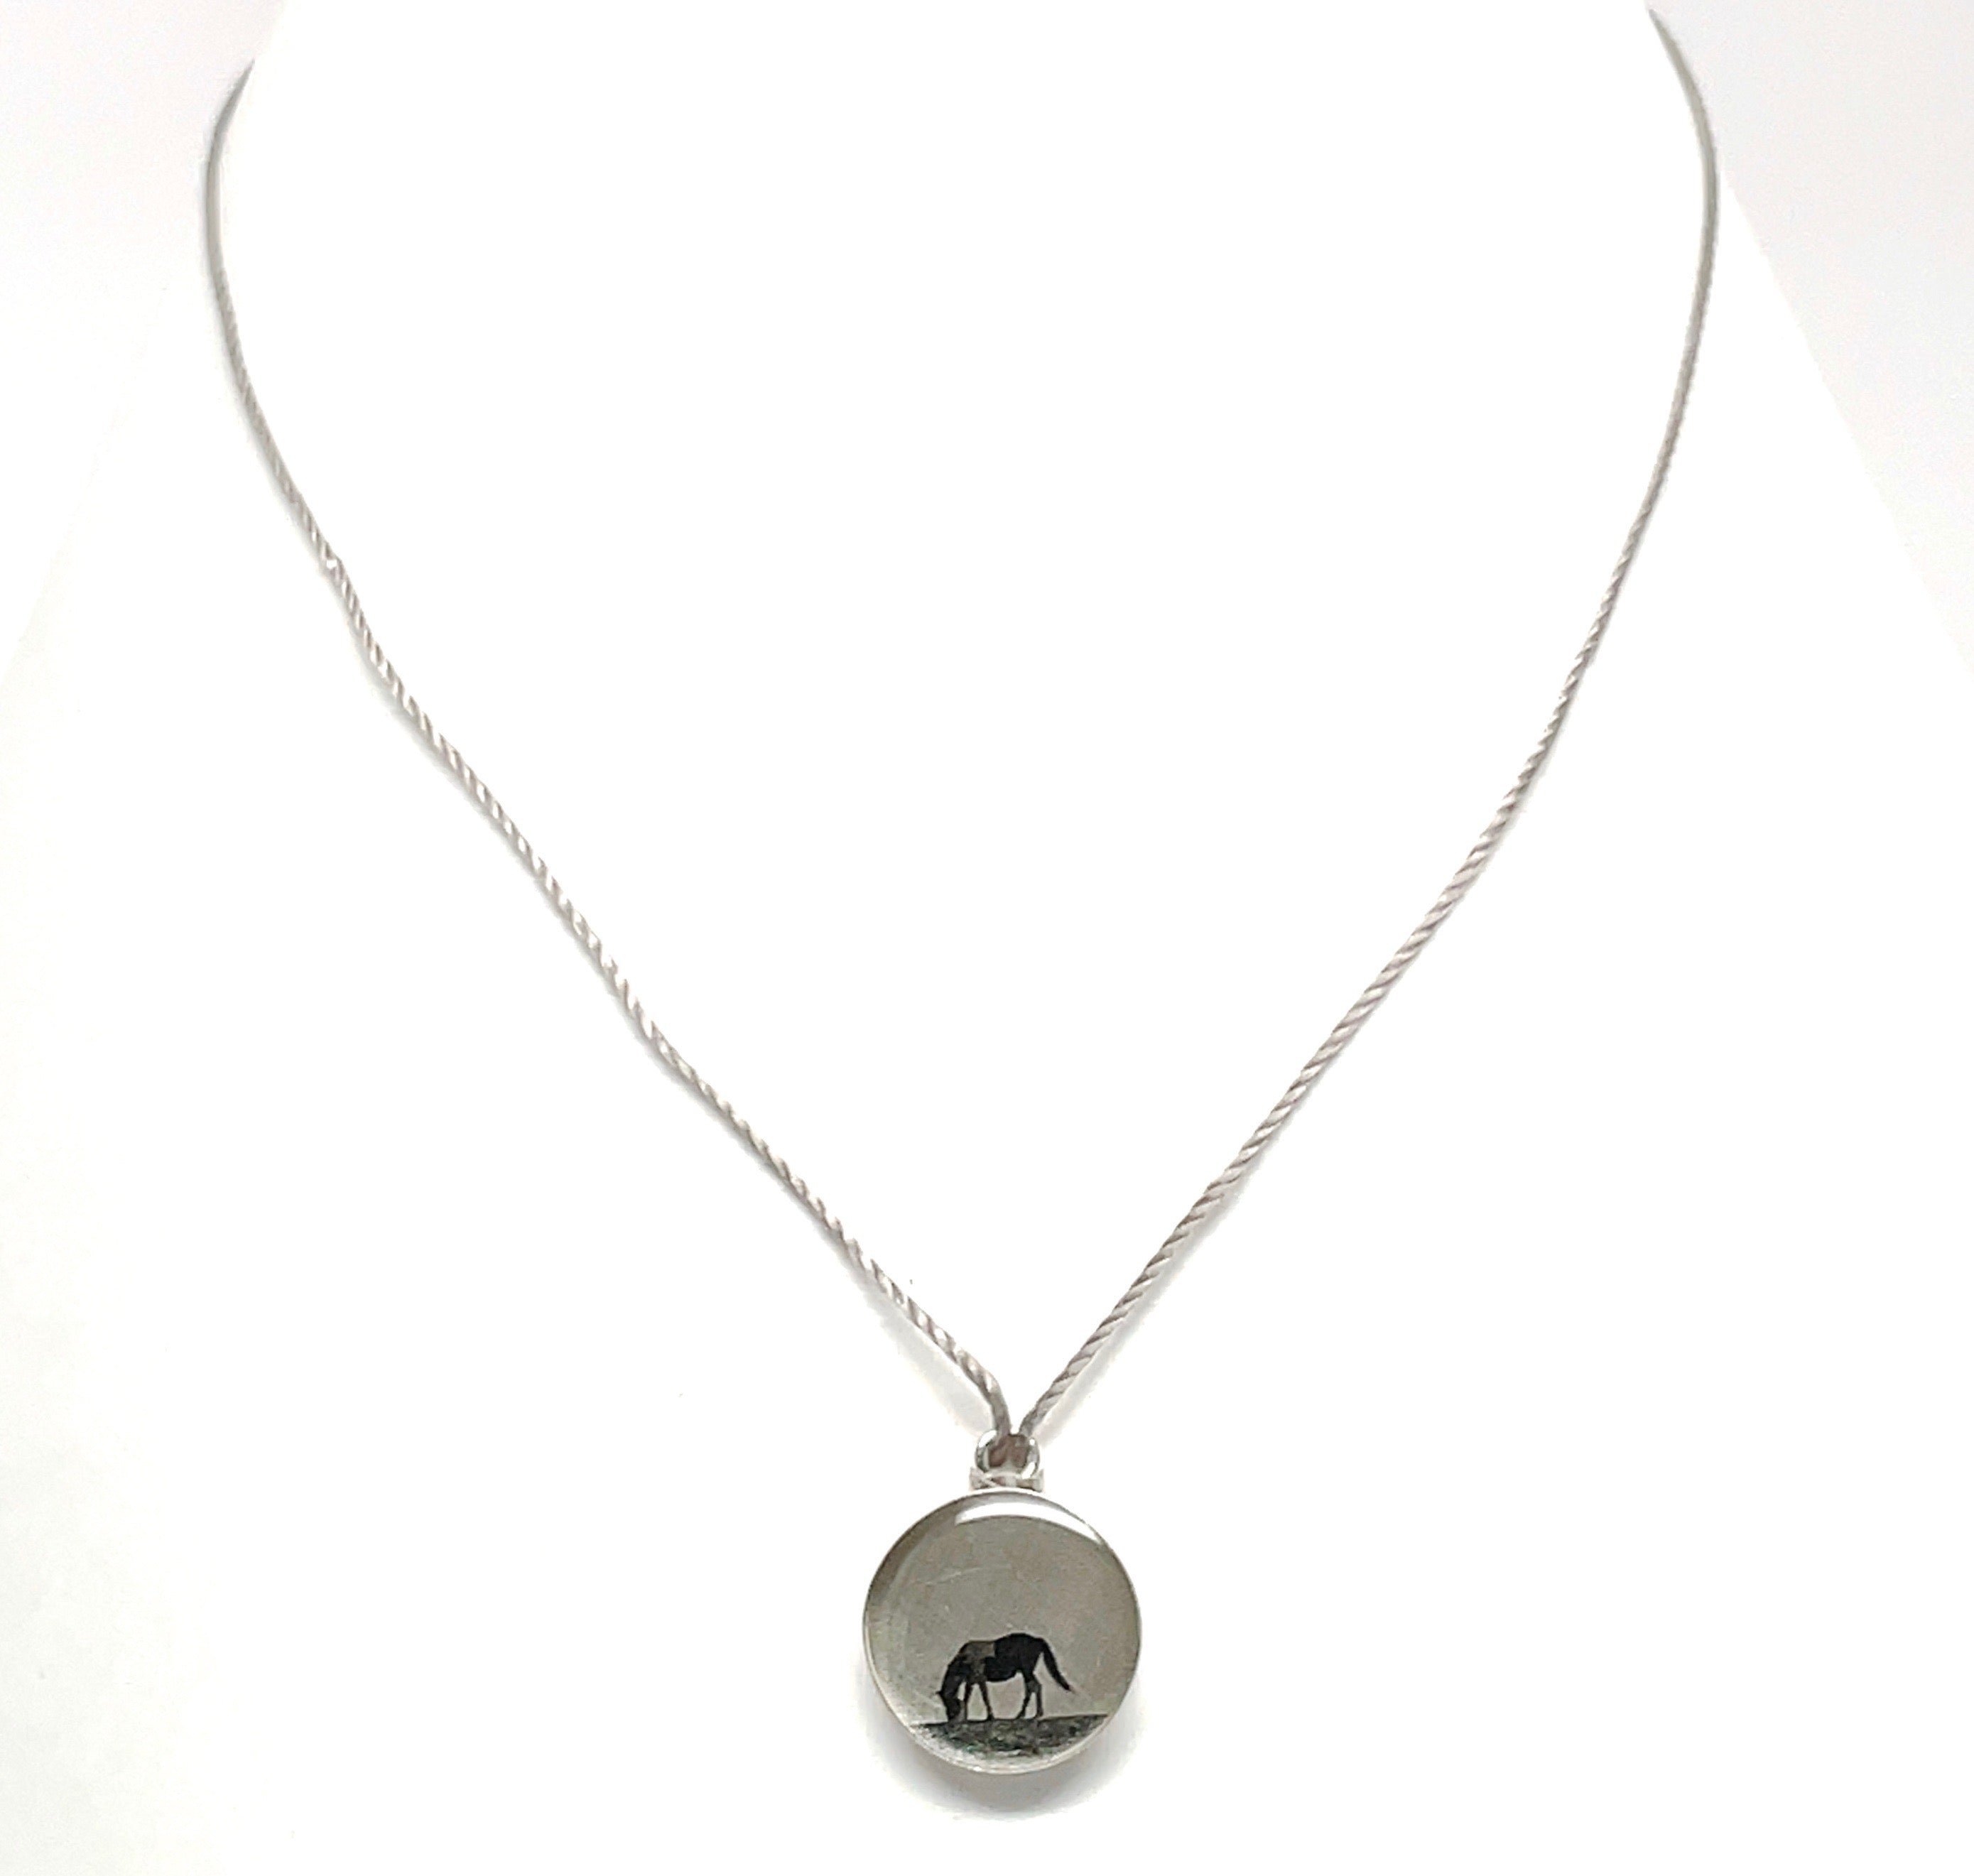 Horse scene equestrian necklace